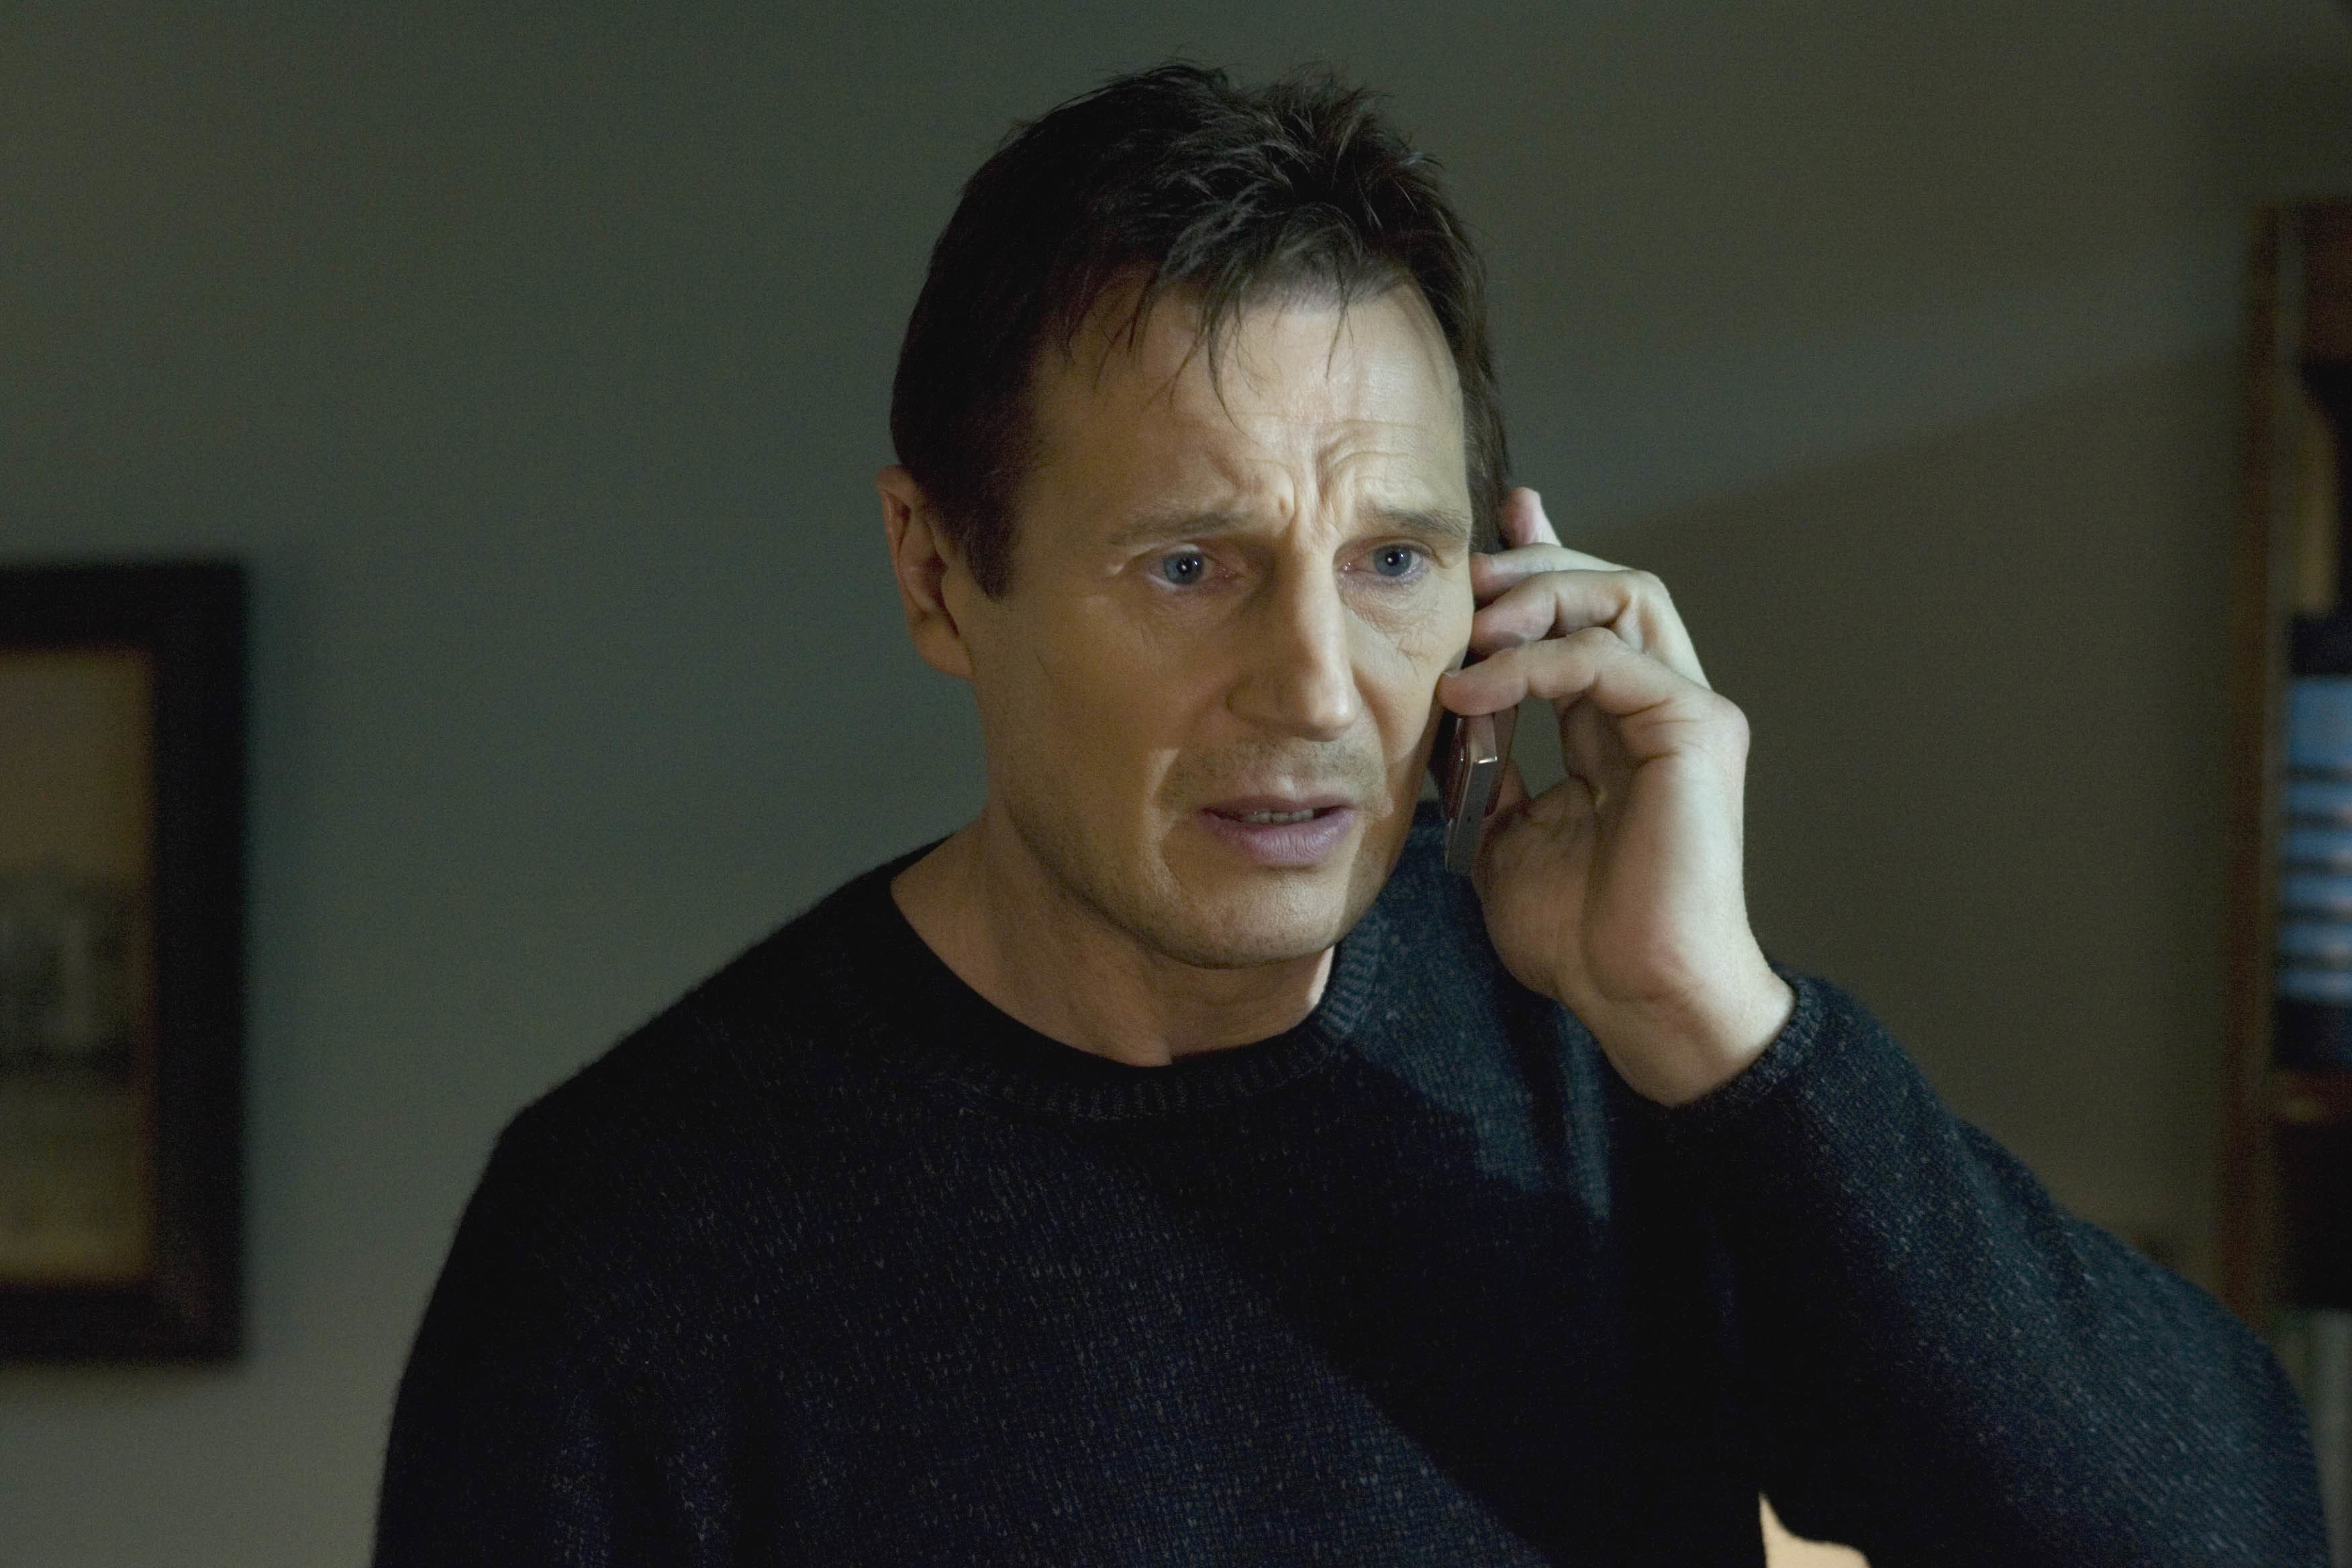 Liam Neeson might be 'Taken' a break from action movies ...